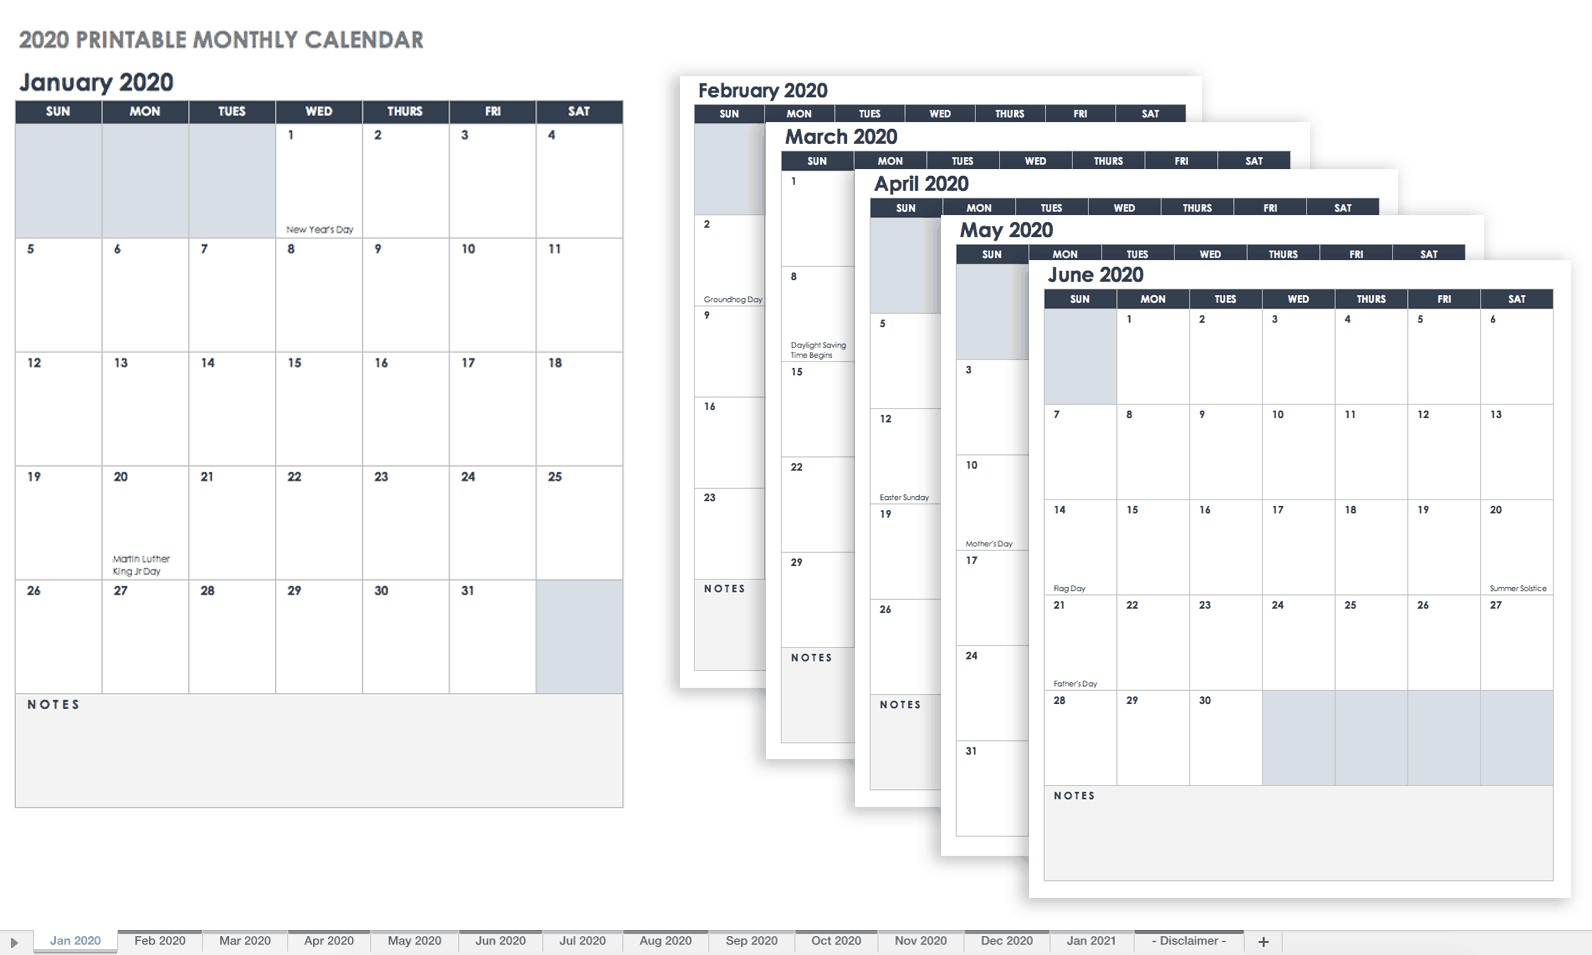 Free Printable Monthly Calendar 2020 with Holidays Free Printable Excel Calendar Templates for 2019 &